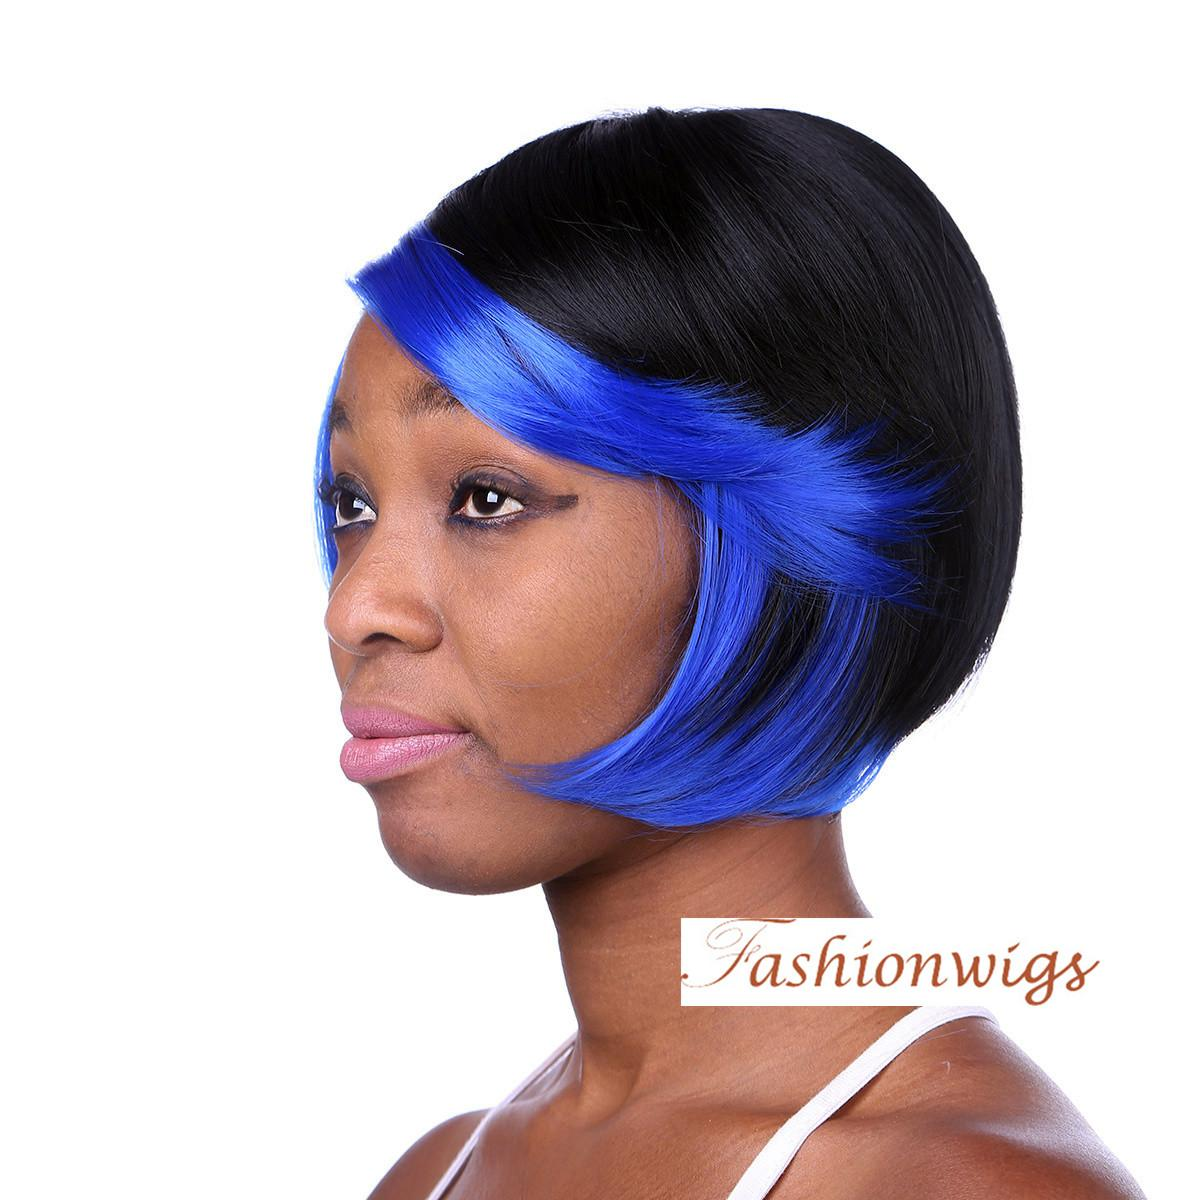 Straight Bob Hairstyle Synthetic Hair Wigs For Black Women African American Wigs Blue Black Heat Resistant Synthetic Wigs Ladies Wig Cheap Wigs With